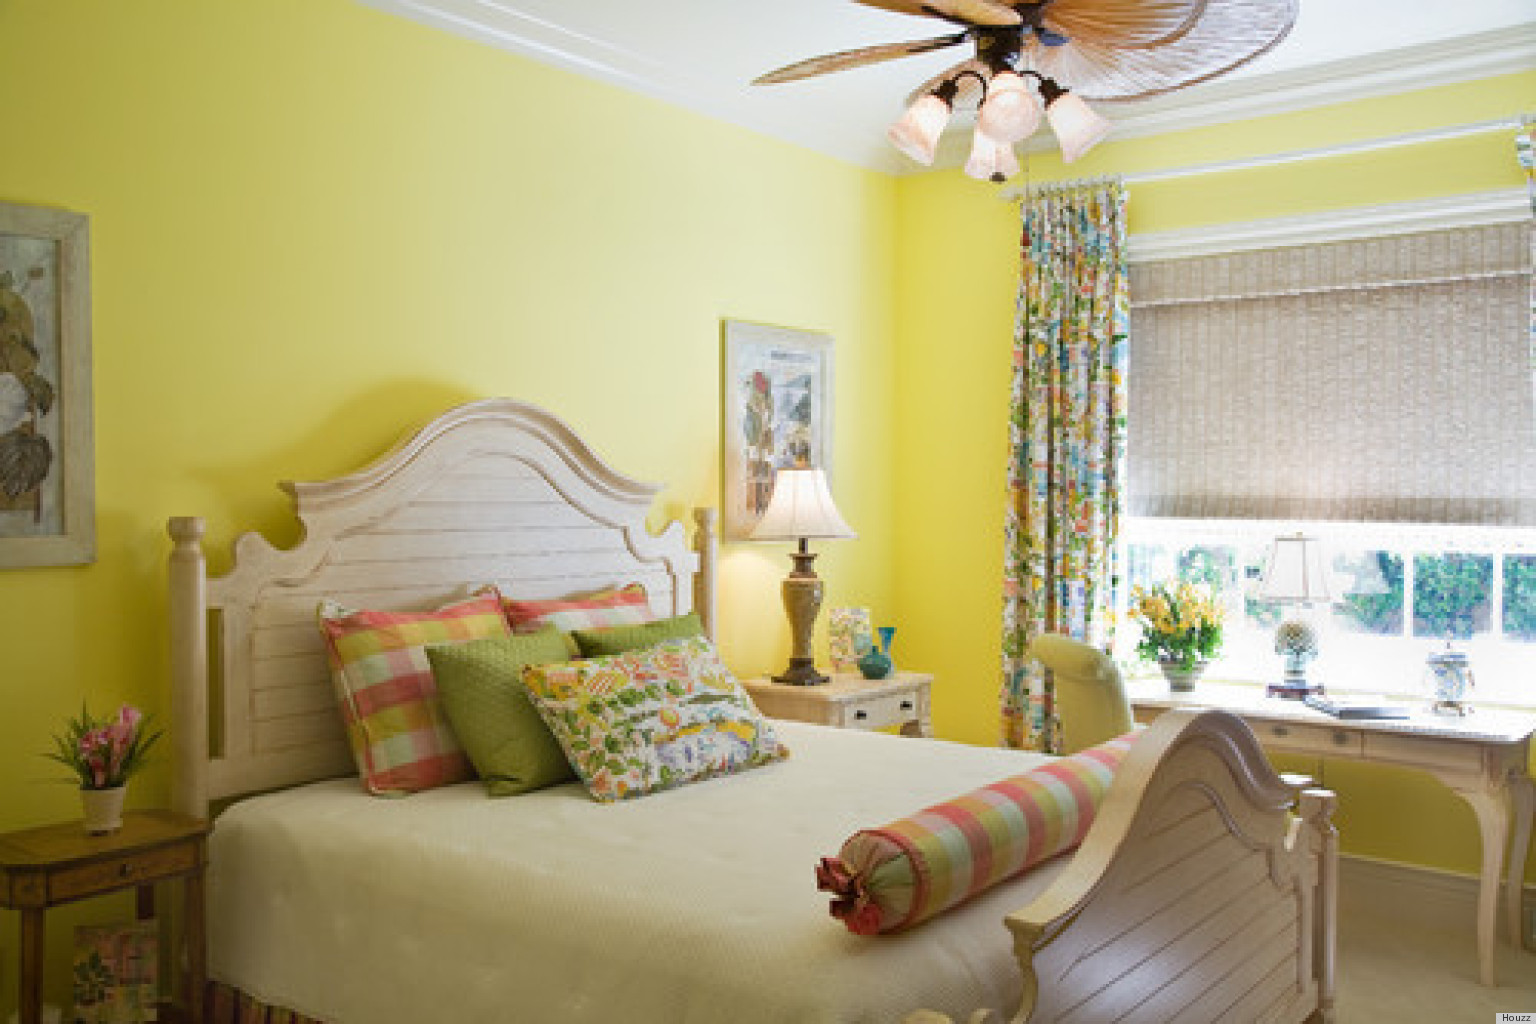 9 Guest Room Ideas That Will Make Any Visitors Feel Right At Home (PHOTOS)  | HuffPost